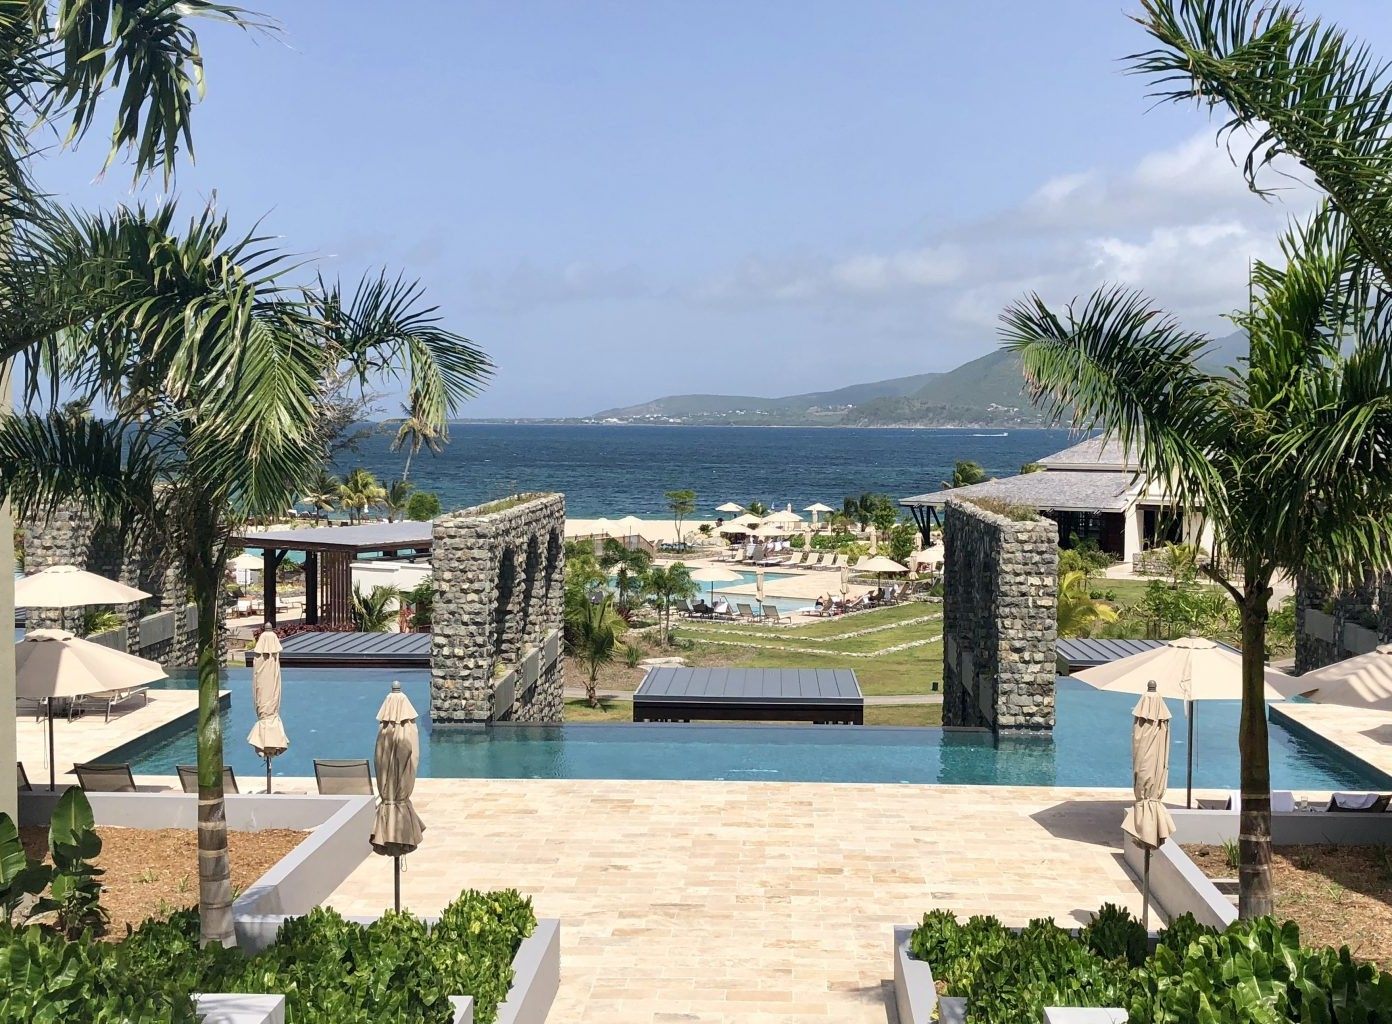 Park Hyatt Hotel, Sent Kitts and Nevis